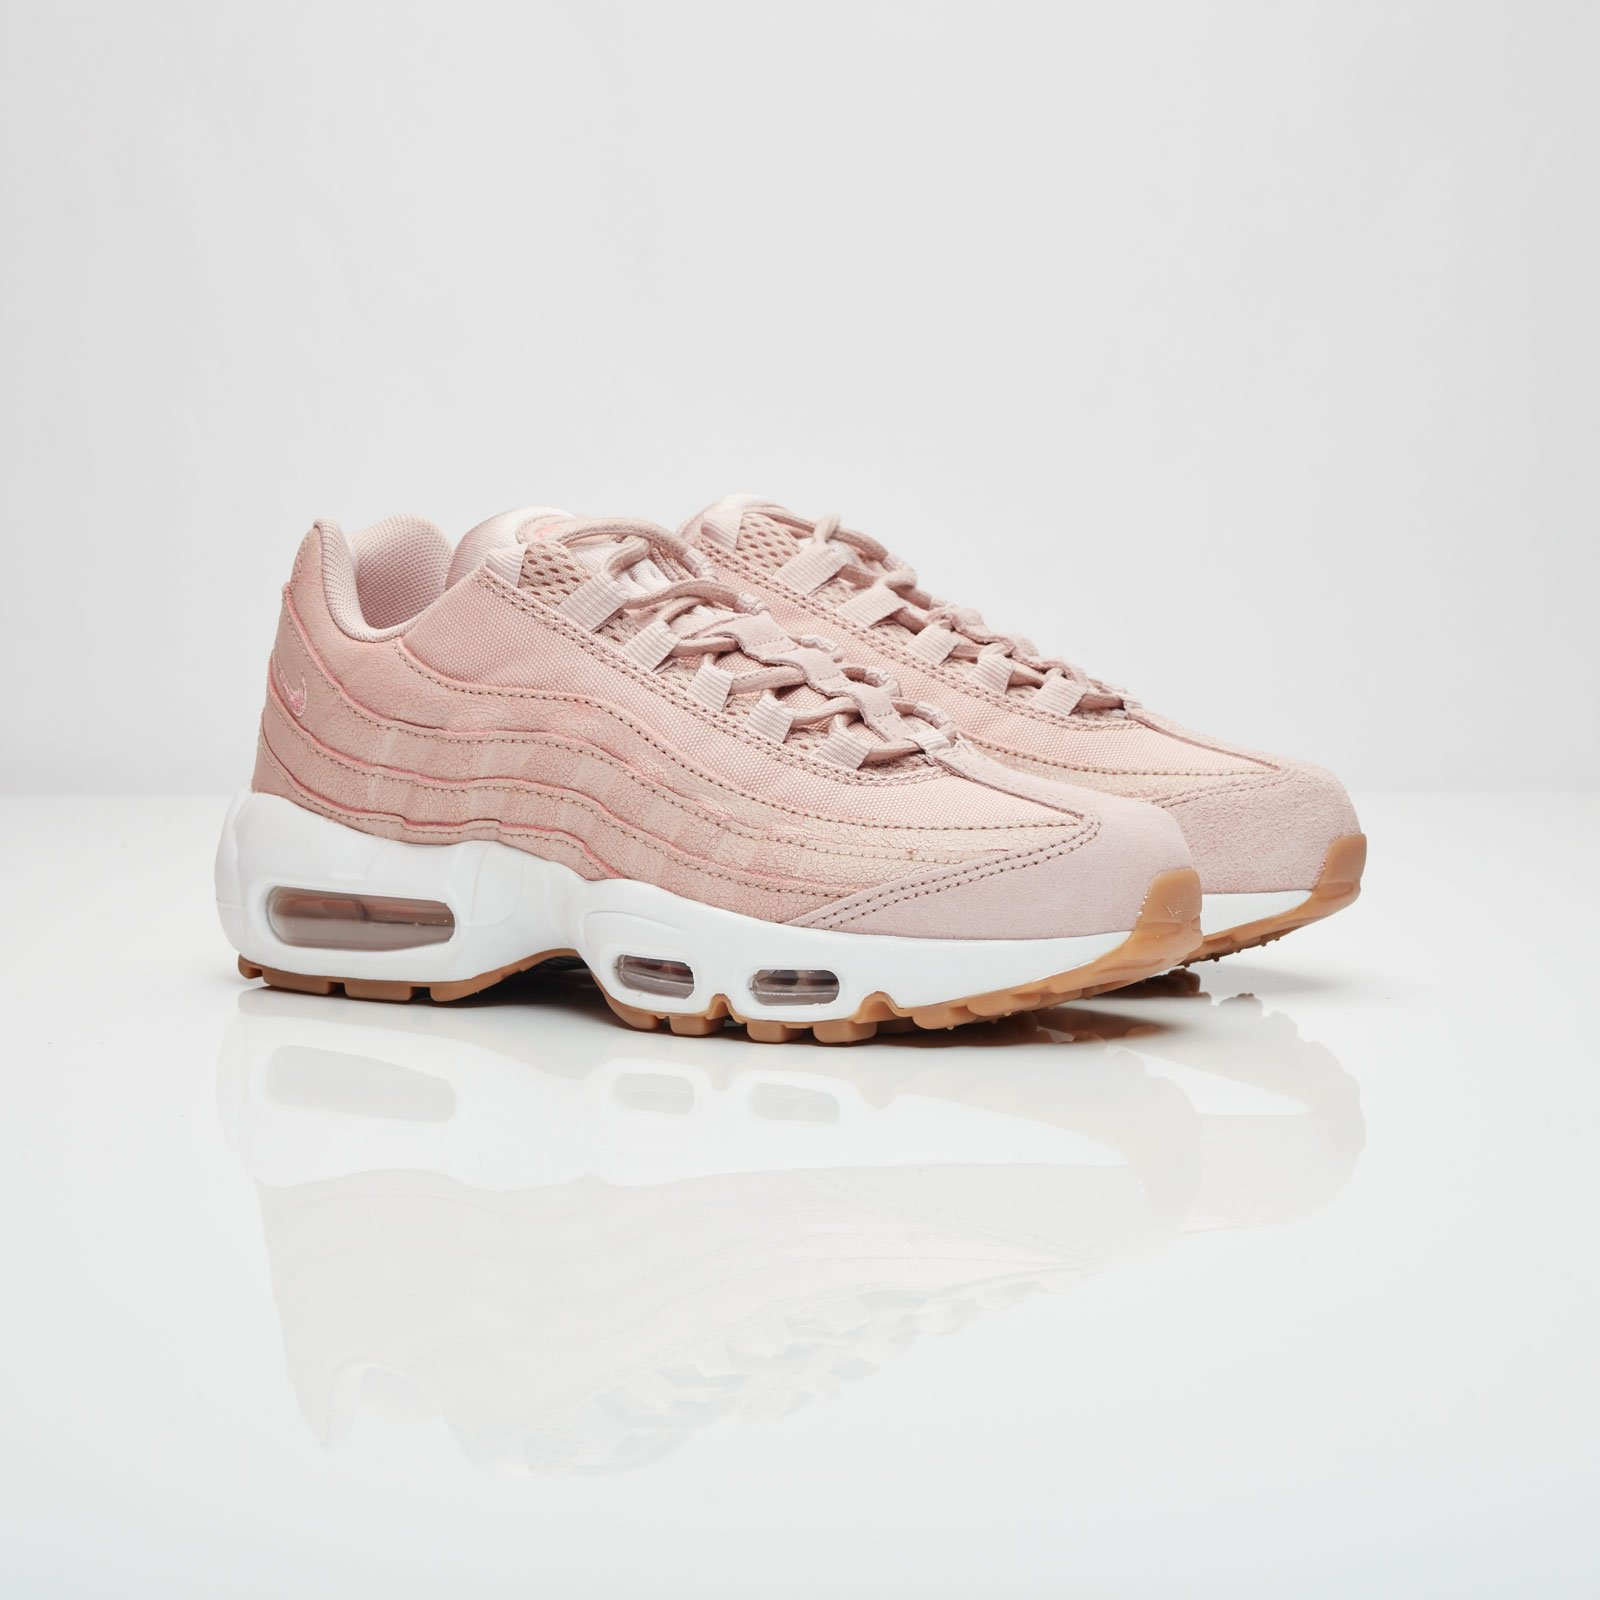 switzerland nike air max 95 rose premium 85db1 0a273